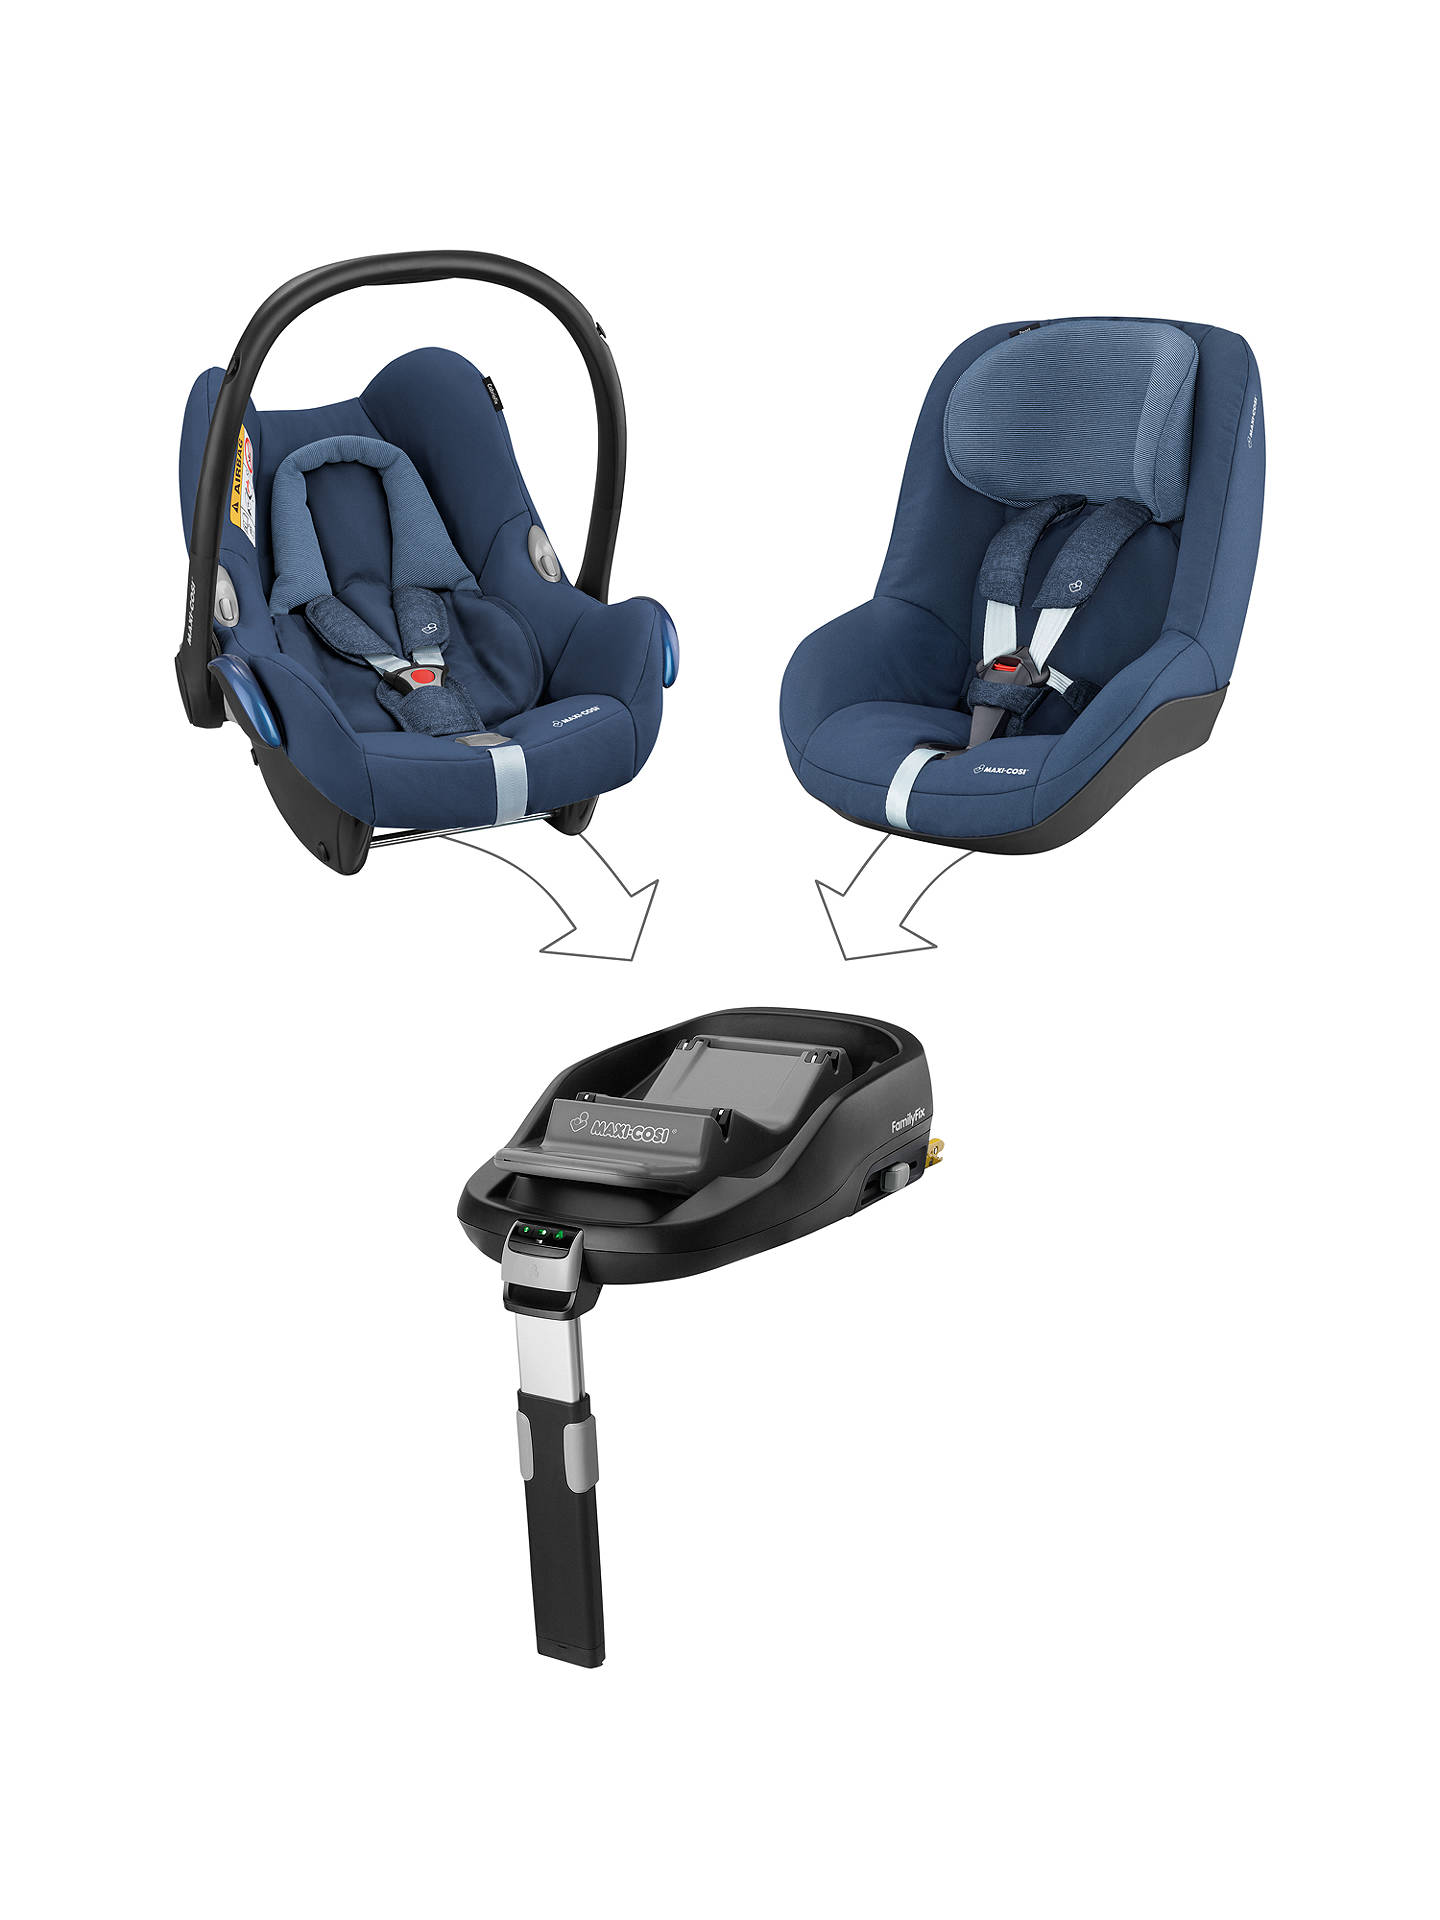 Brilliant Baby Blue Car Seat Covers All Seasons Cover Fits Maxi Cosi Ibusinesslaw Wood Chair Design Ideas Ibusinesslaworg